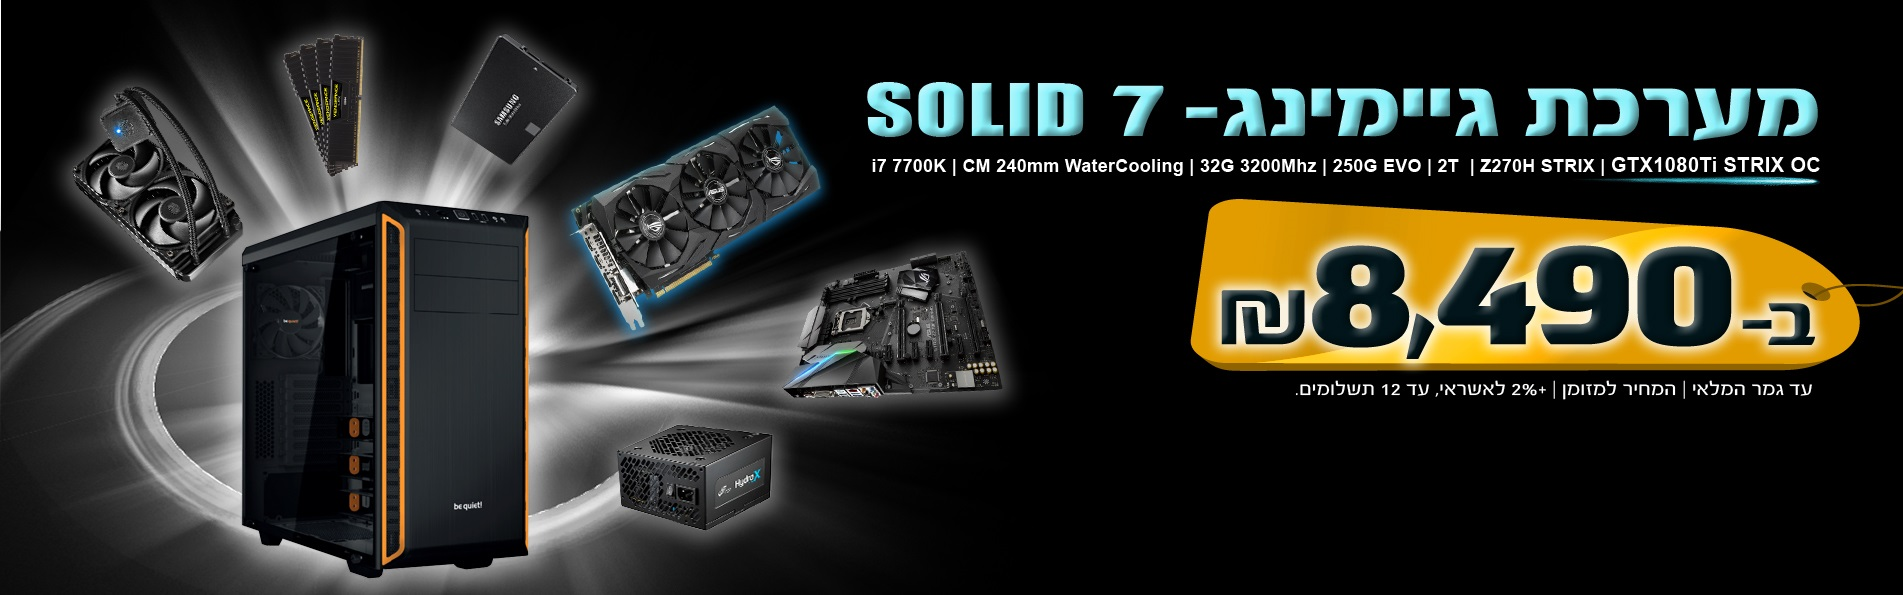 Solid-7-MAIN-New